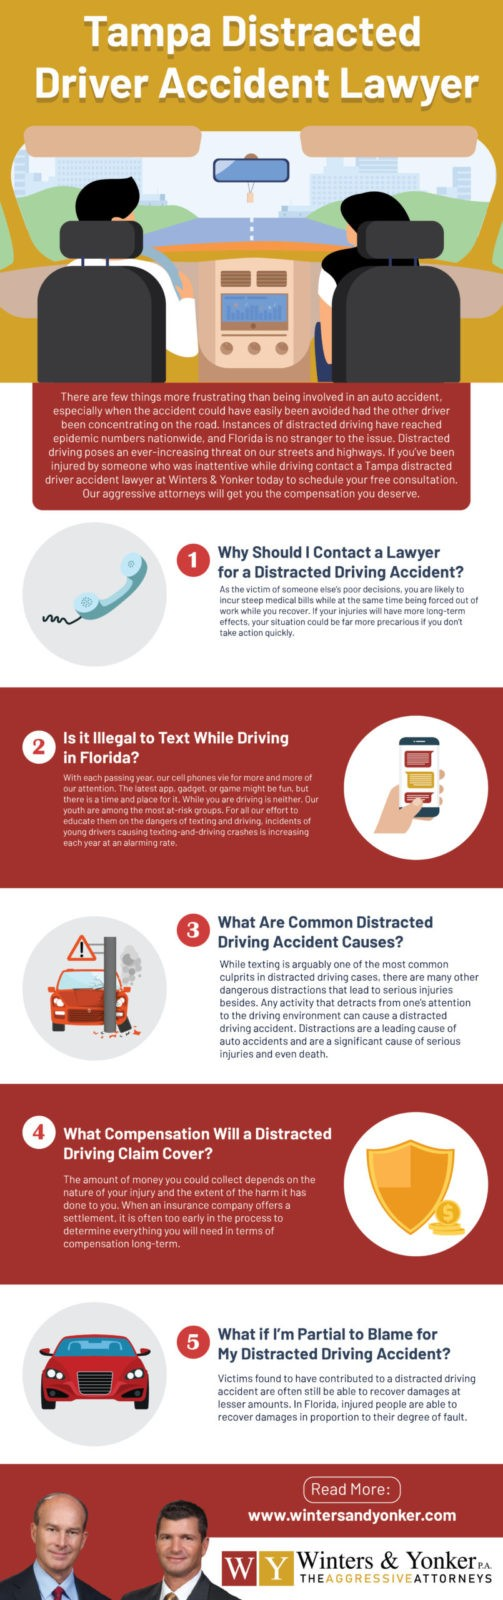 Tampa Distracted Driver Accident Lawyer 1